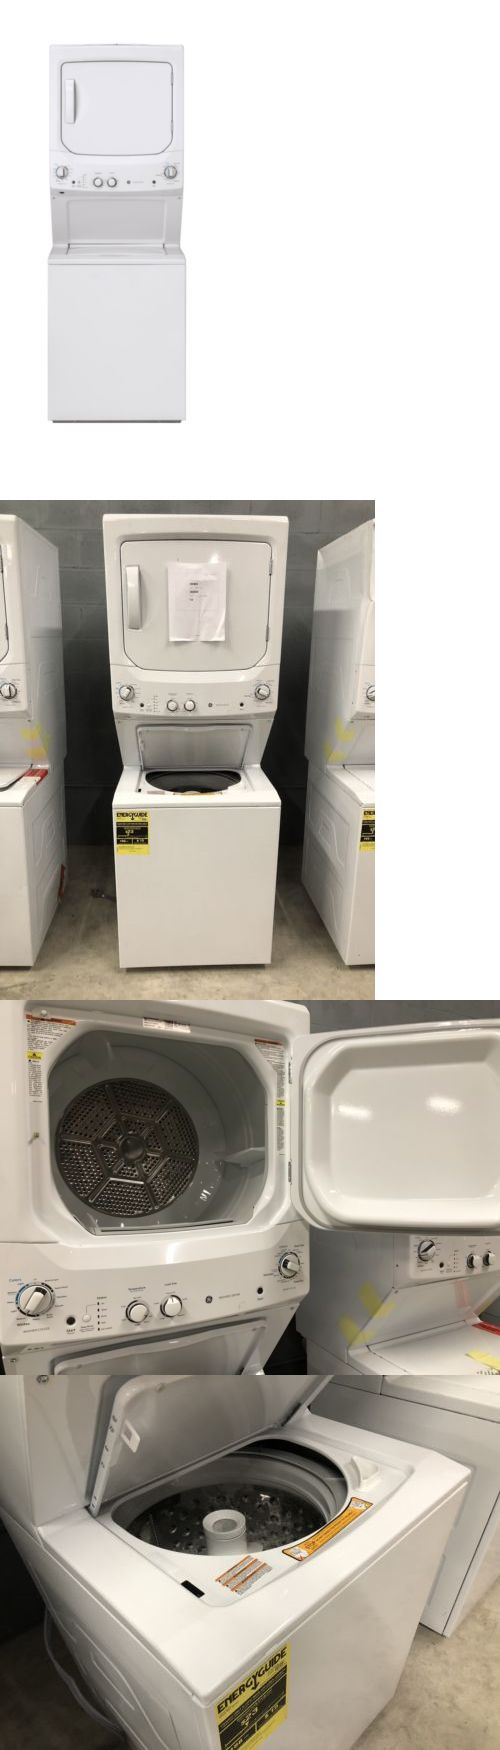 Washer Dryer Combinations And Sets 71257 New 2018 Gud27essmww